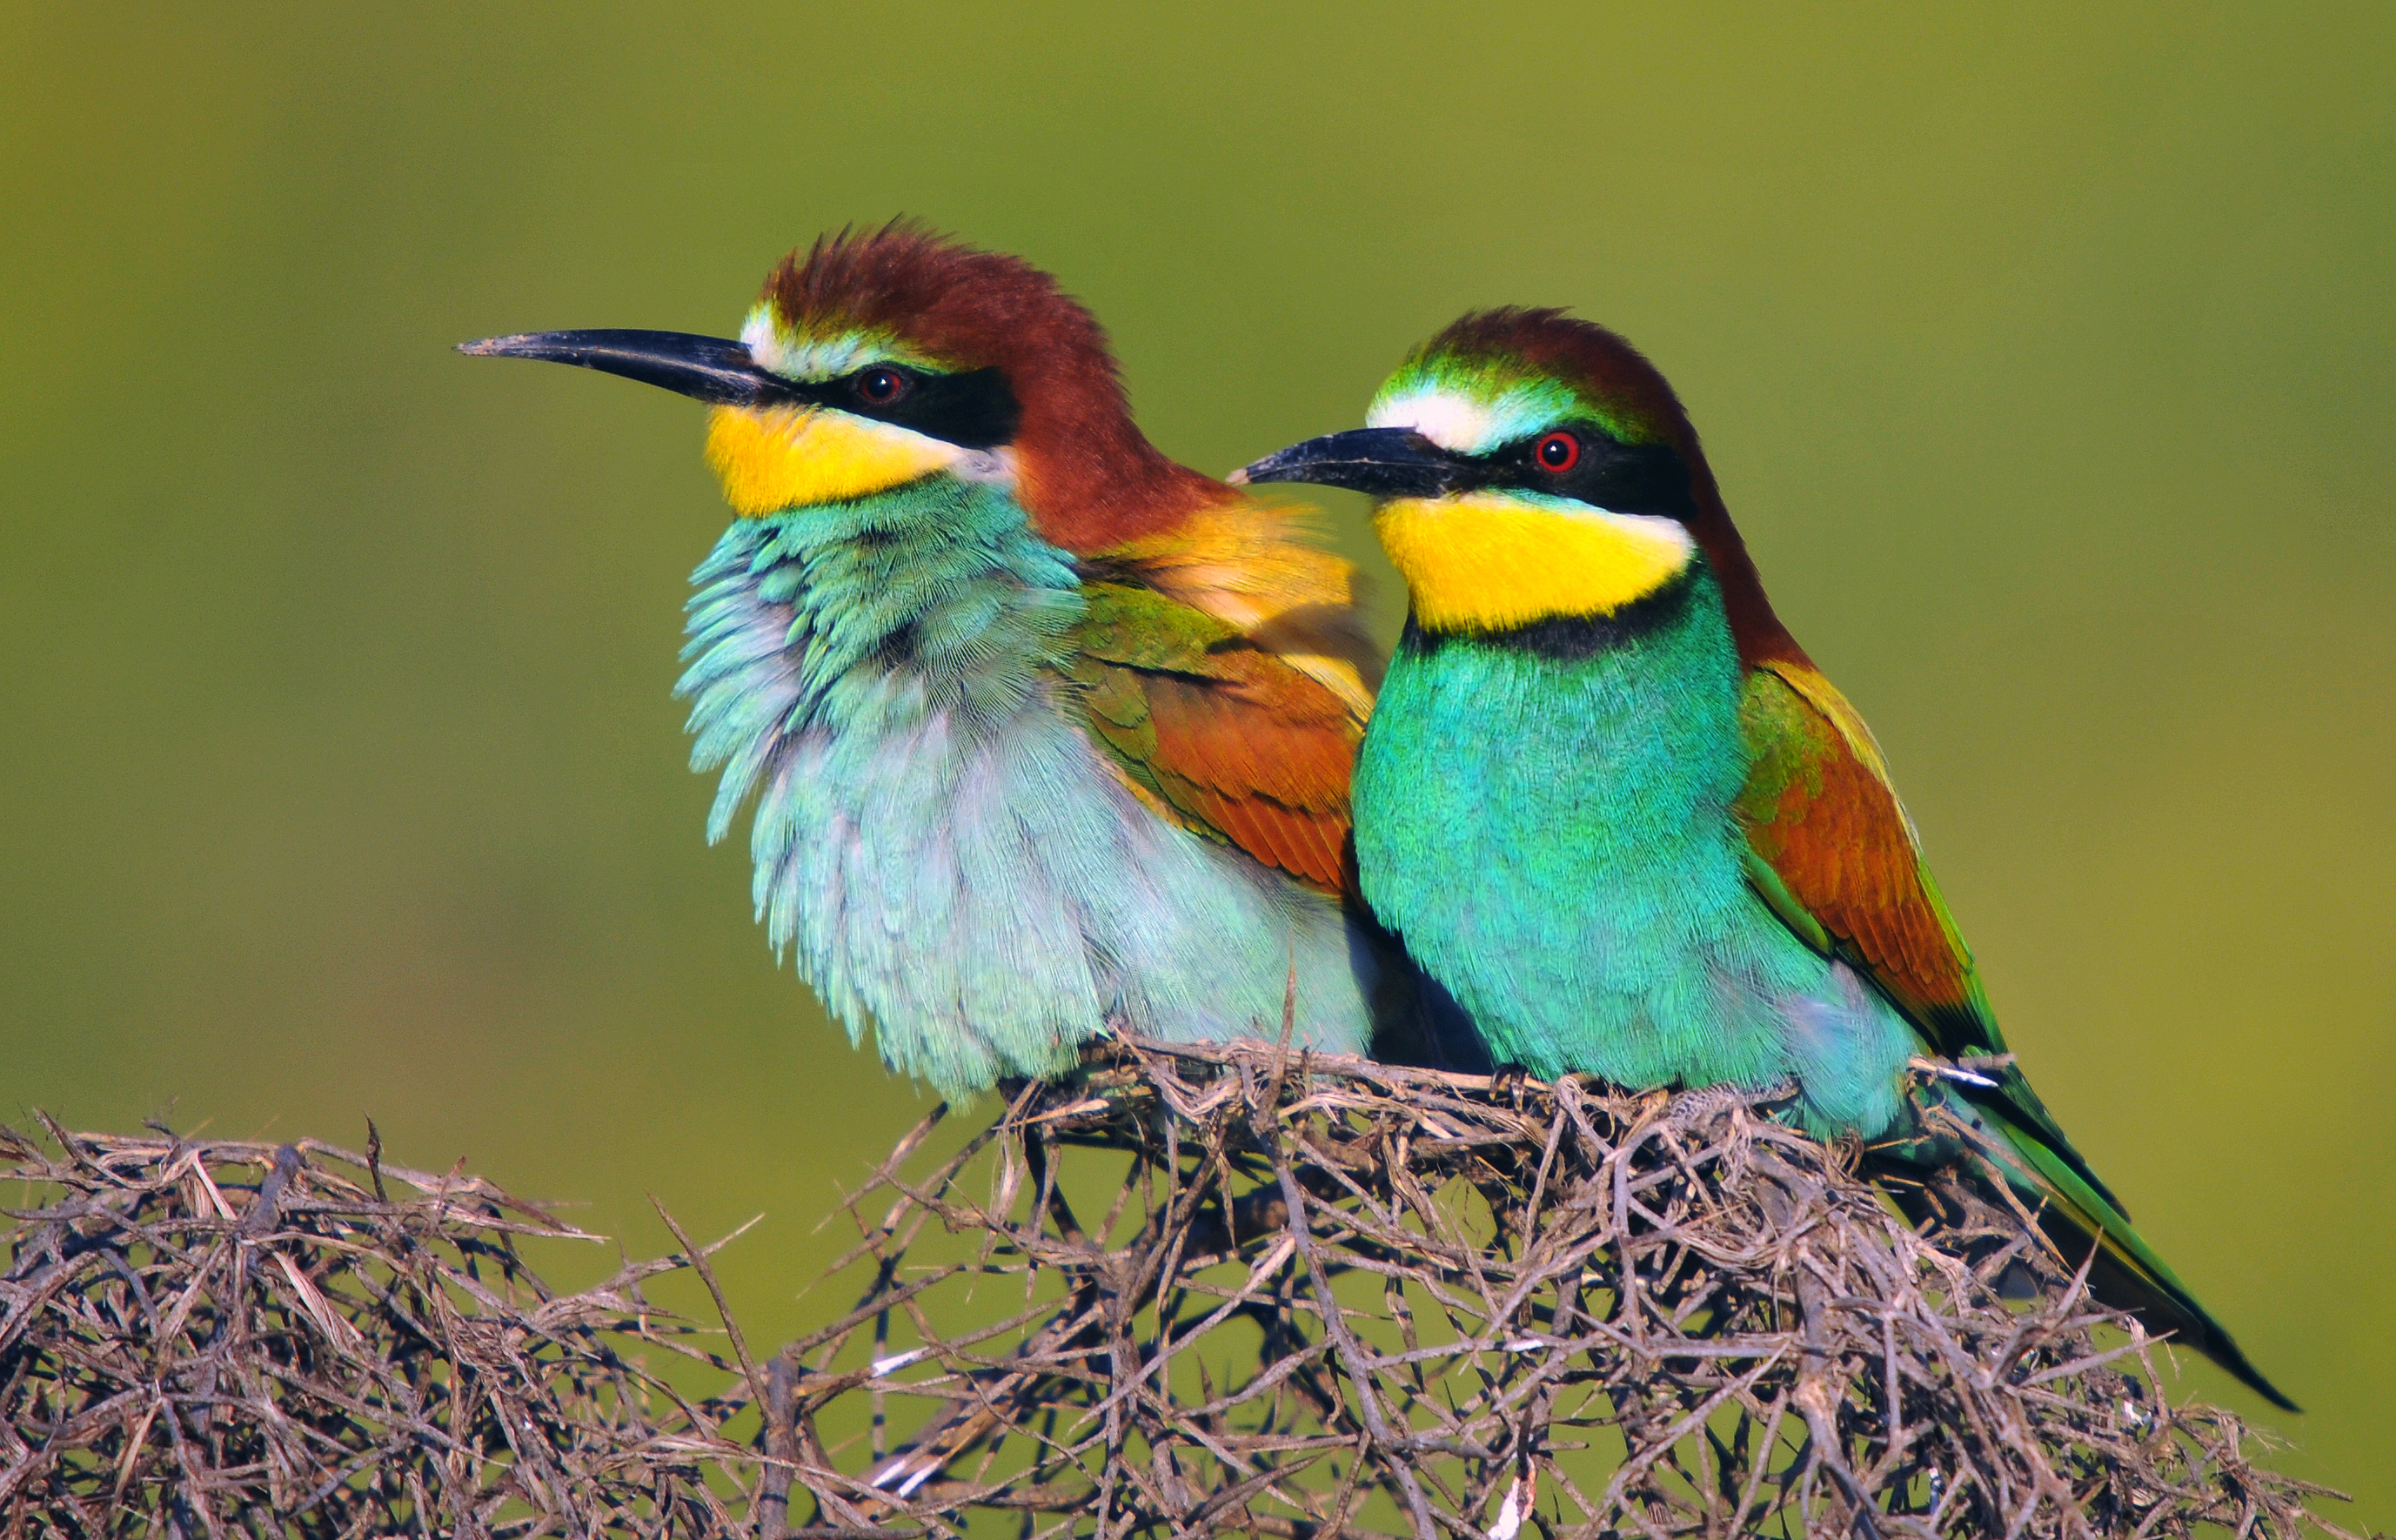 Depiction of Merops apiaster